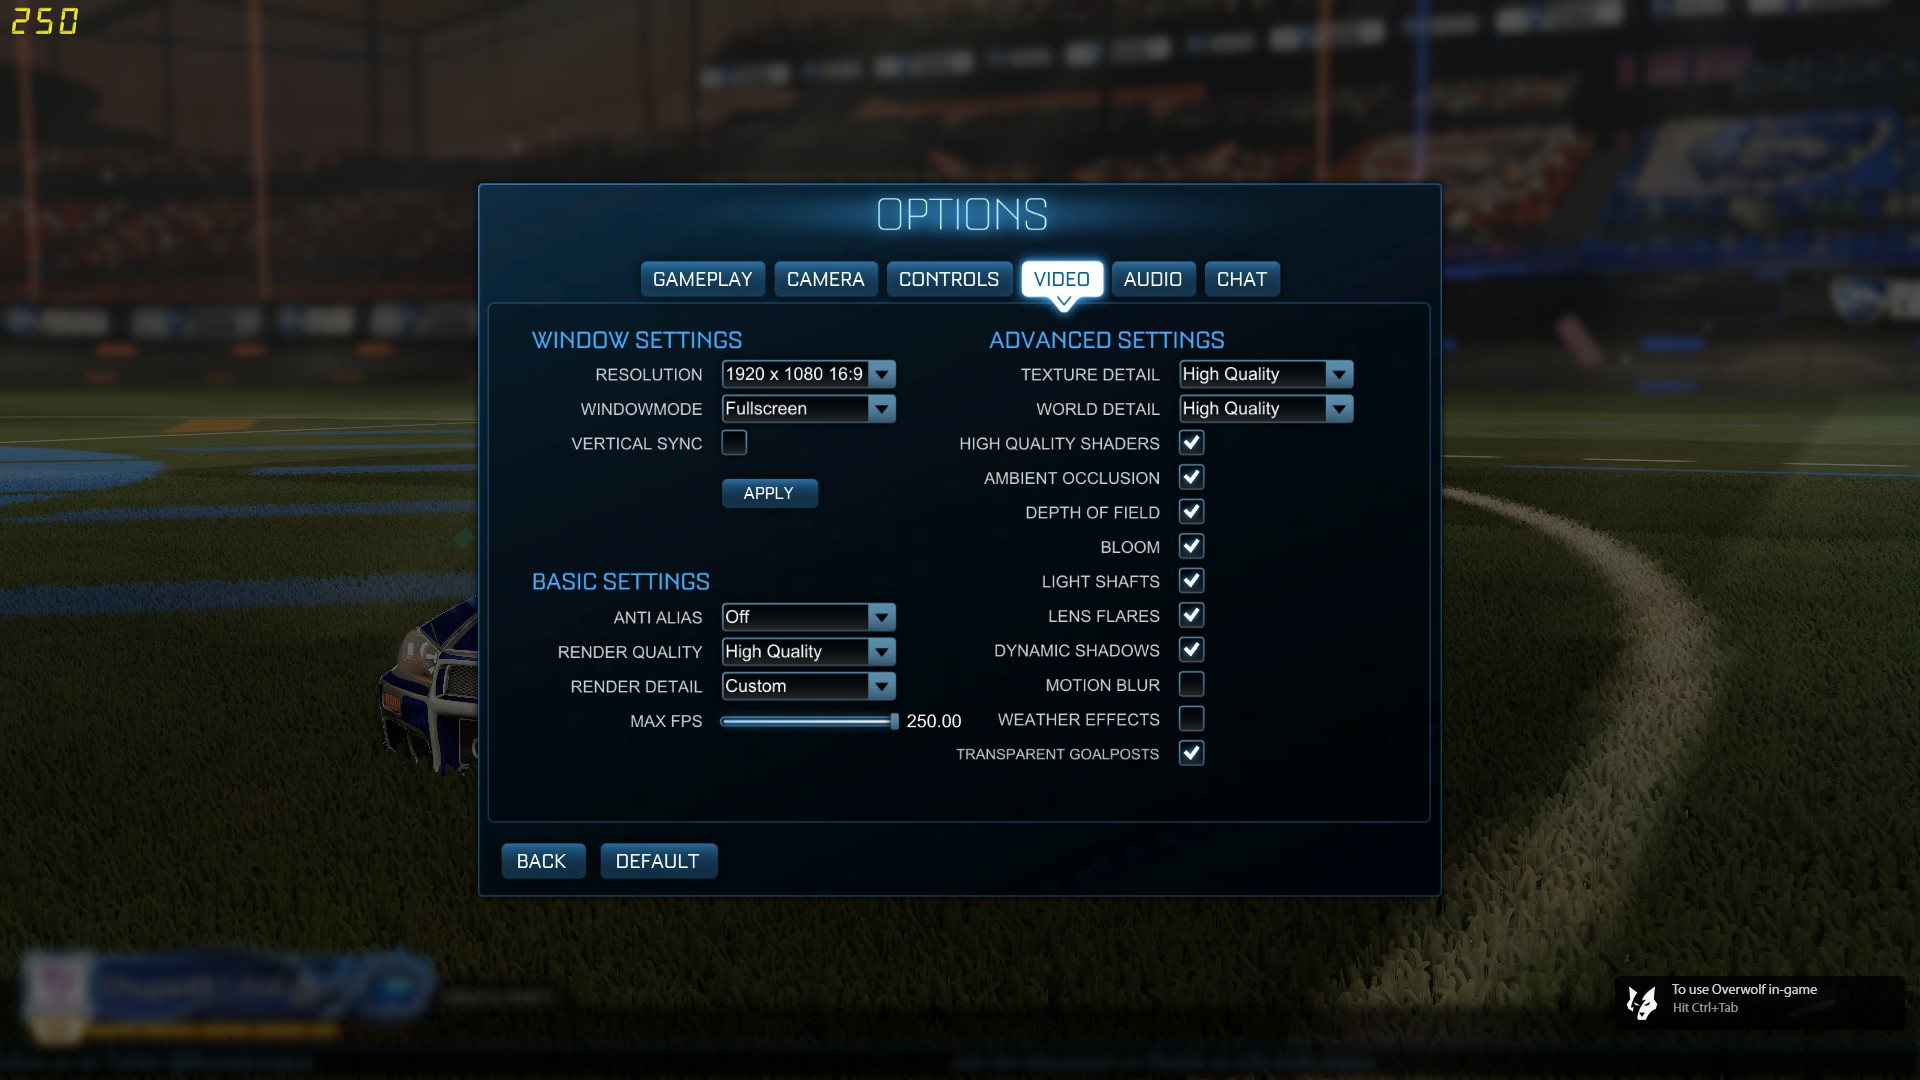 Rocket League Pro Camera Settings, Controller, and FPS Guide